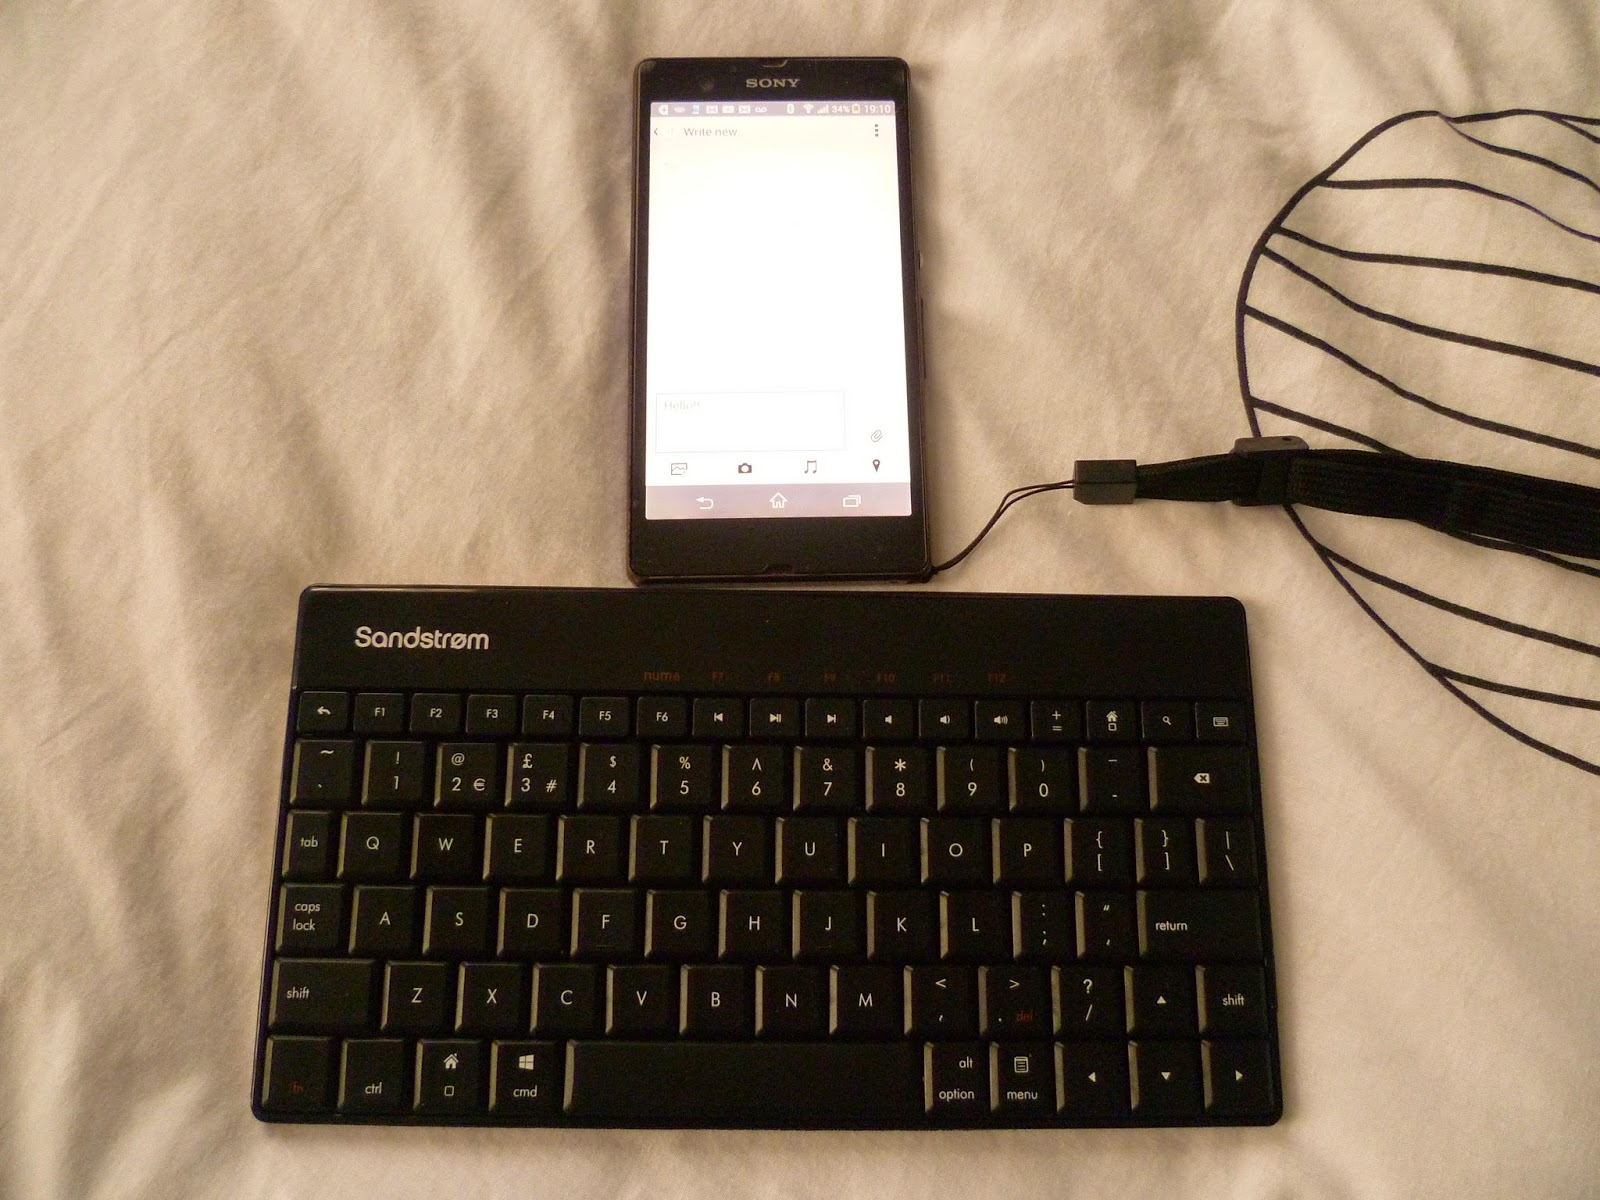 sandstrom bluetooth wireless keyboard tablet laptop smartphone mobile phone device review